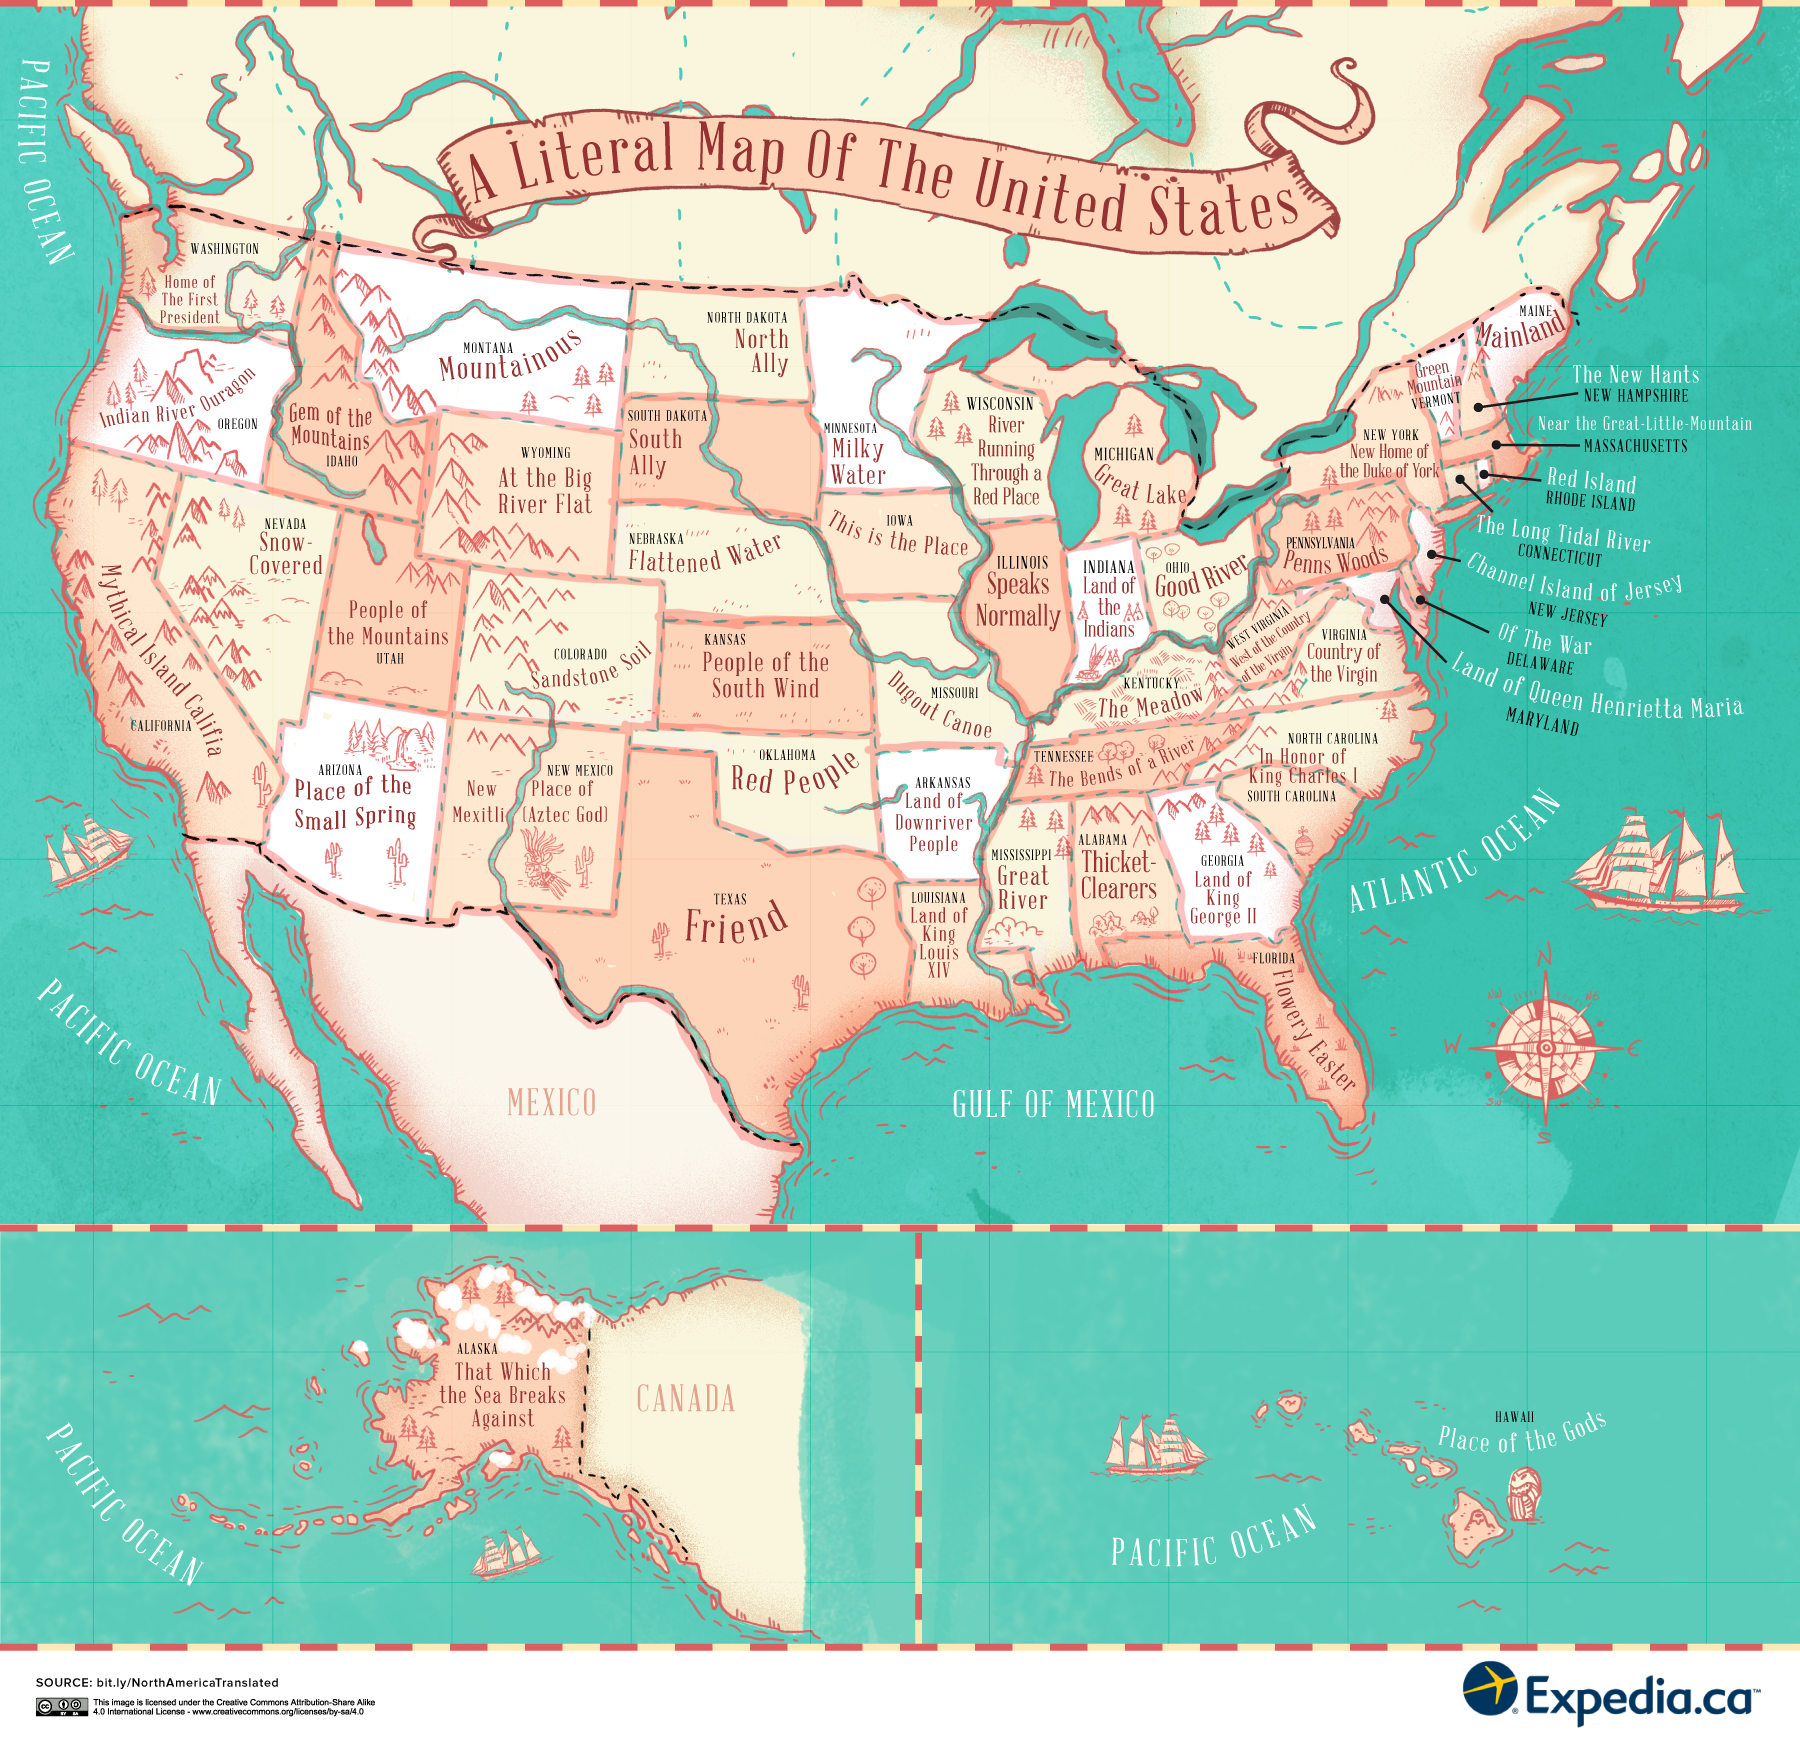 This fascinating map reveals the meaning behind place names in the USA and Canada